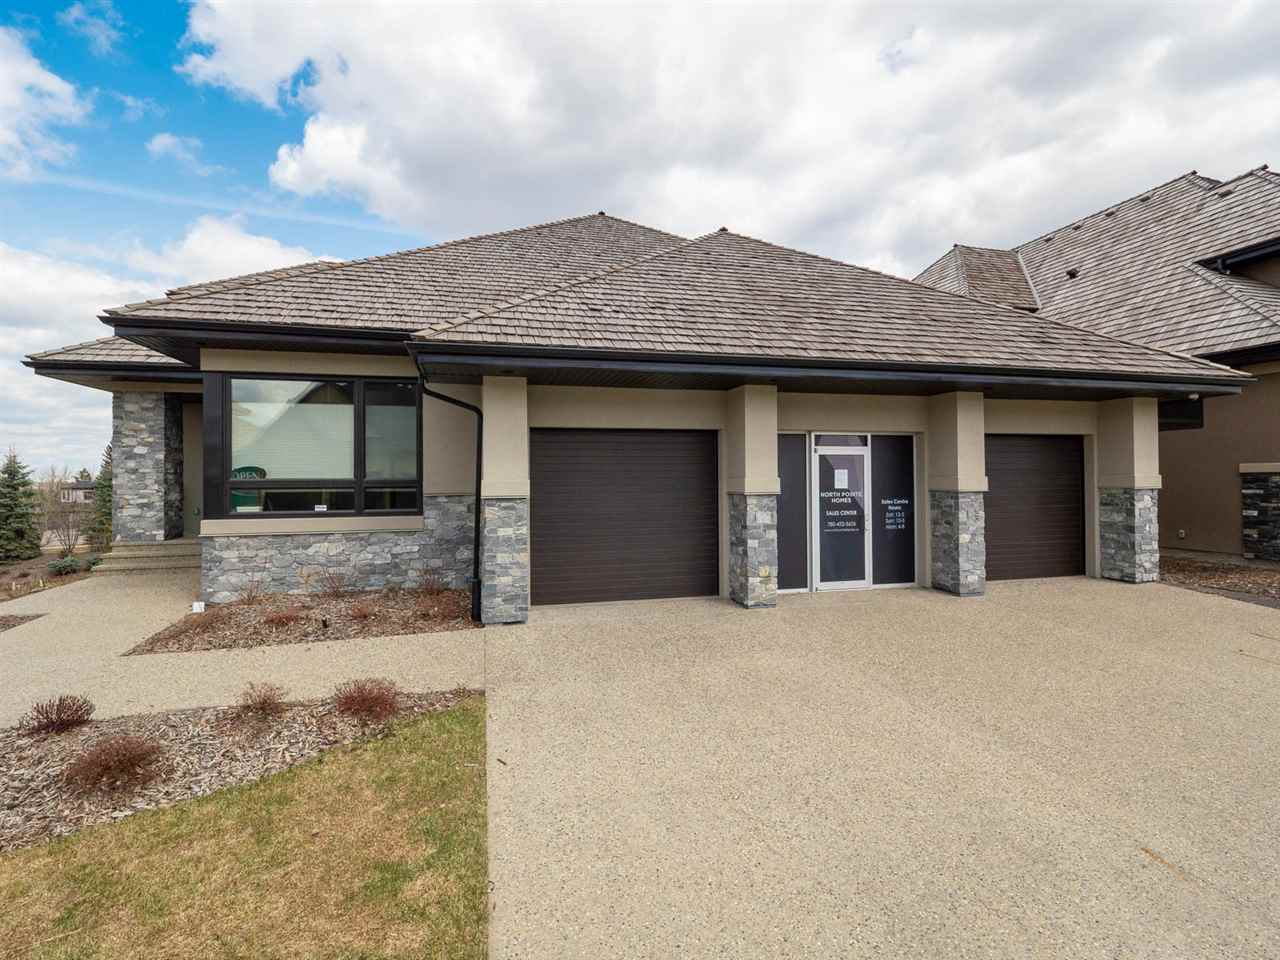 Main Photo: 2789 WHEATON Drive in Edmonton: Zone 56 House for sale : MLS®# E4164396